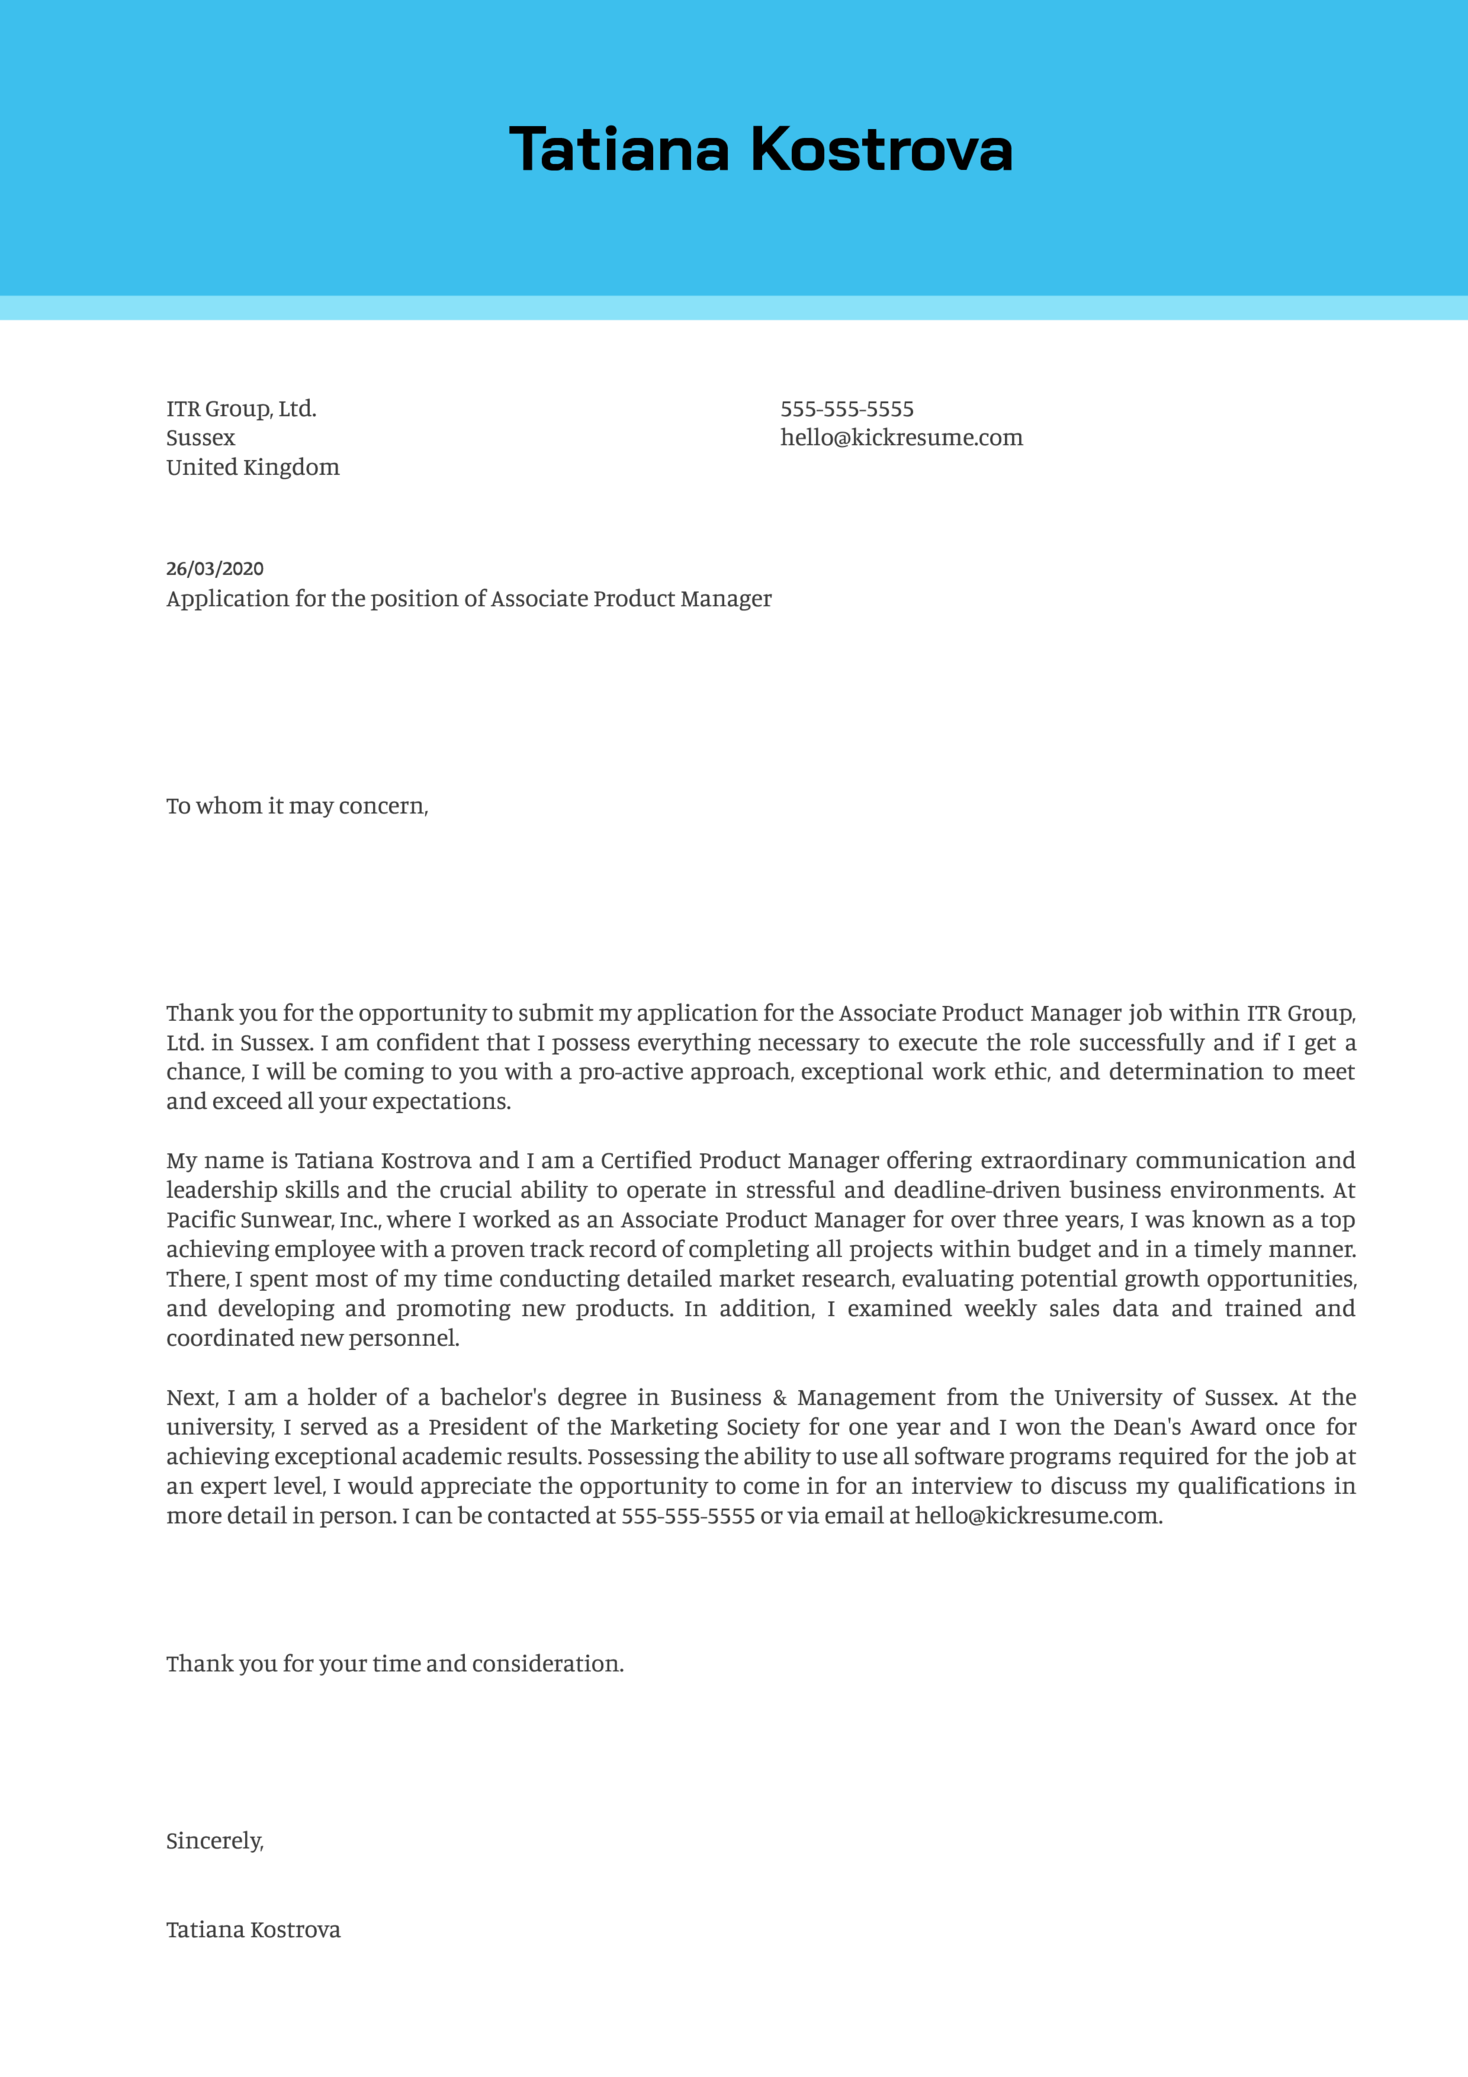 Associate Product Manager Cover Letter Sample